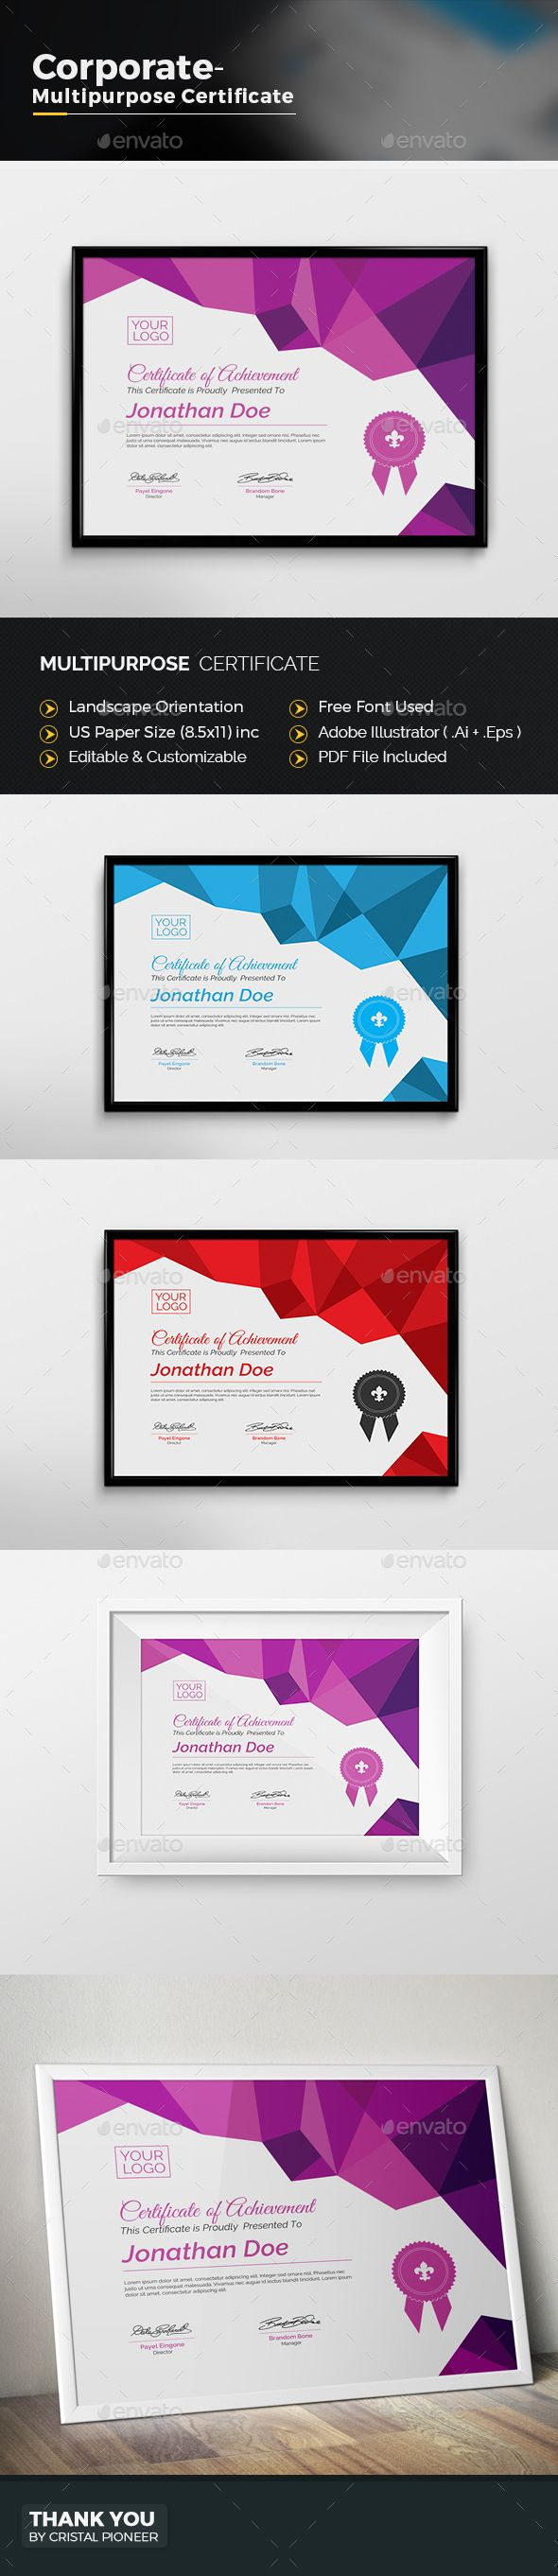 11 best Certificates   Employee Recognition images on Pinterest     Multipurpose Certificate Design Template   Certificate Template Vector EPS   Vector AI  Download here